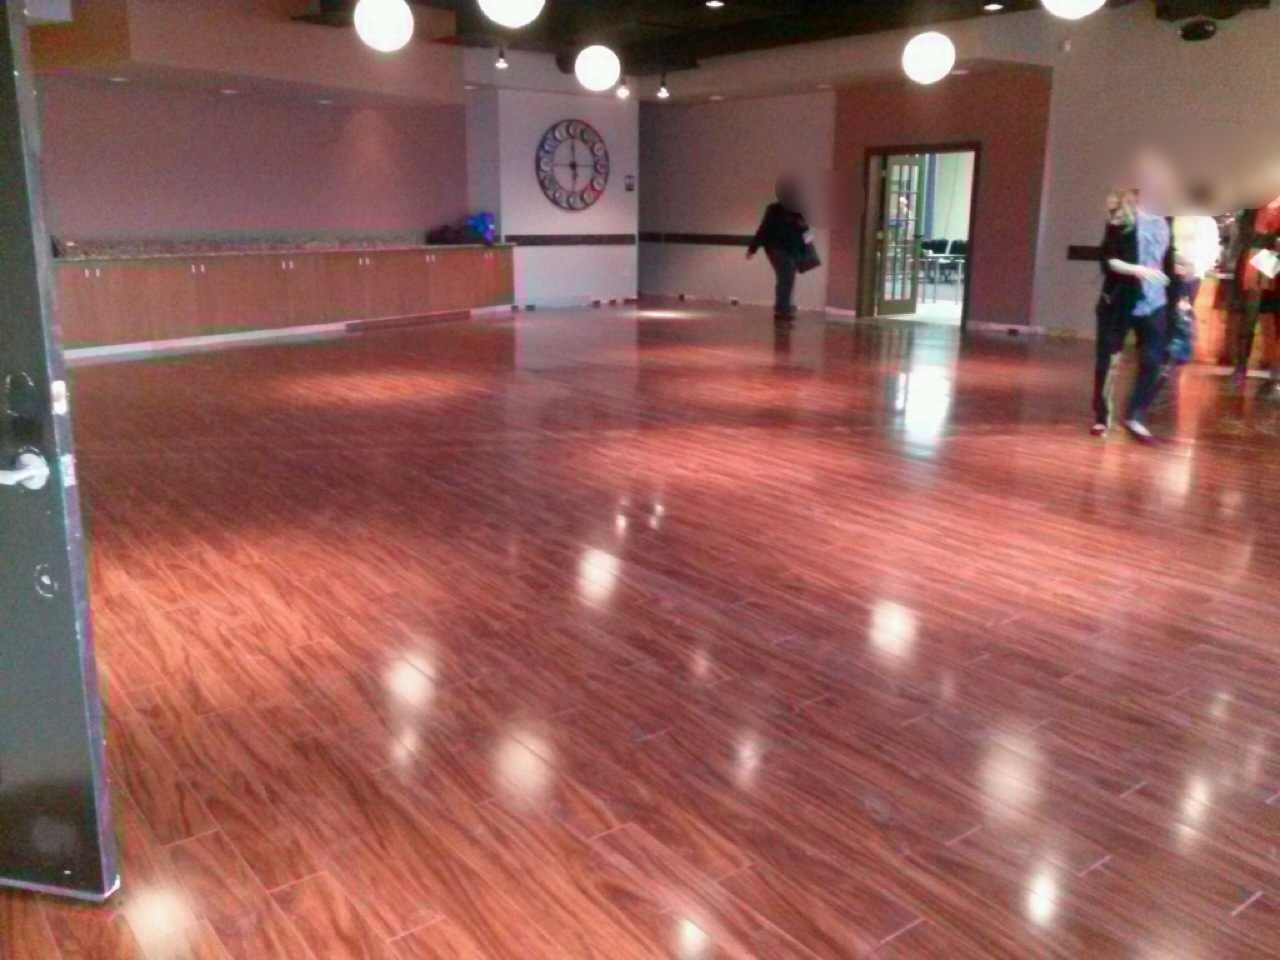 Pwood floors